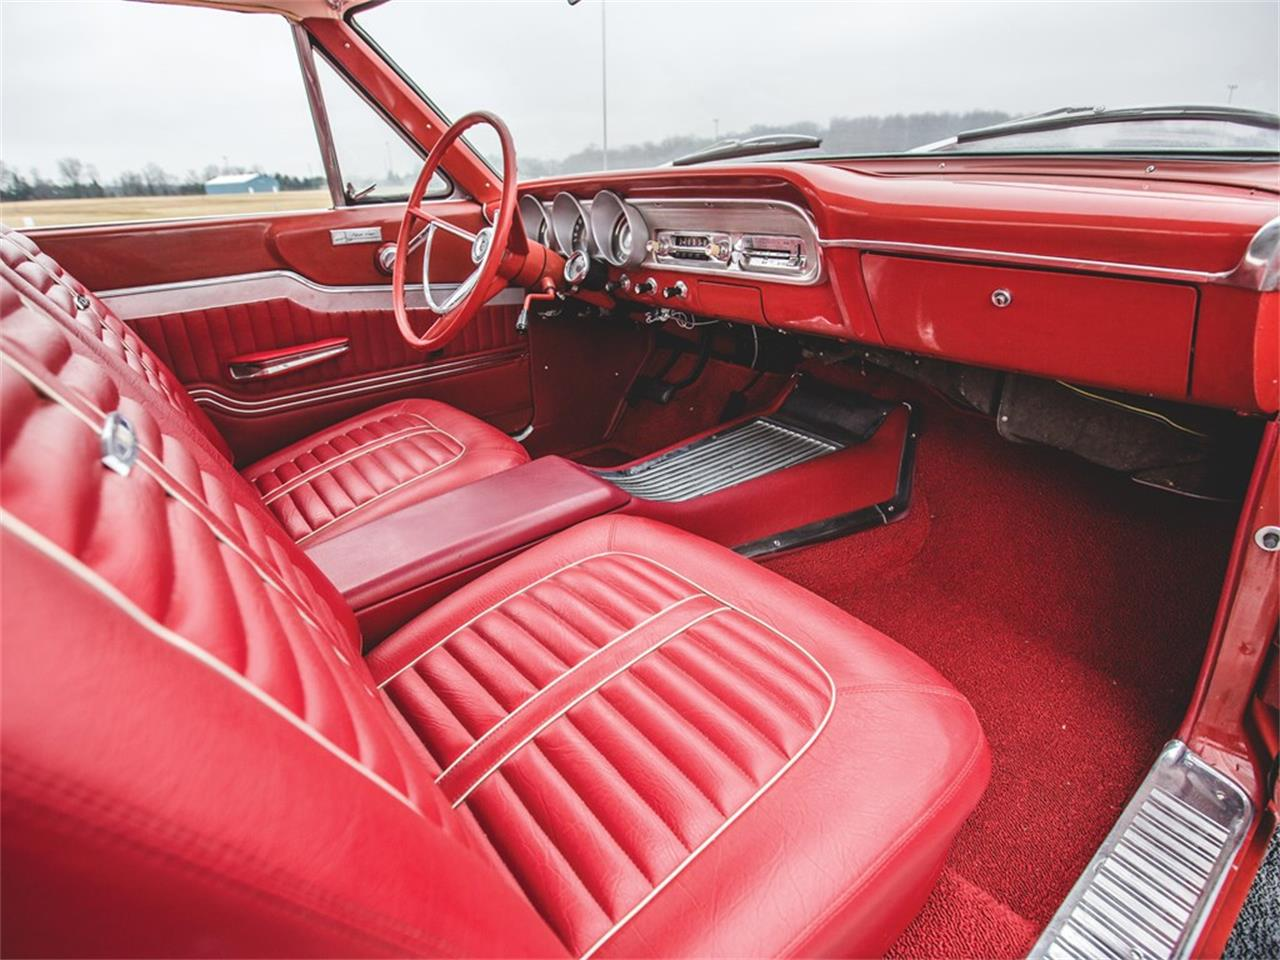 Large Picture of 1963 Fairlane 500 Sports Coupe located in Indiana Auction Vehicle Offered by RM Sotheby's - N4WB